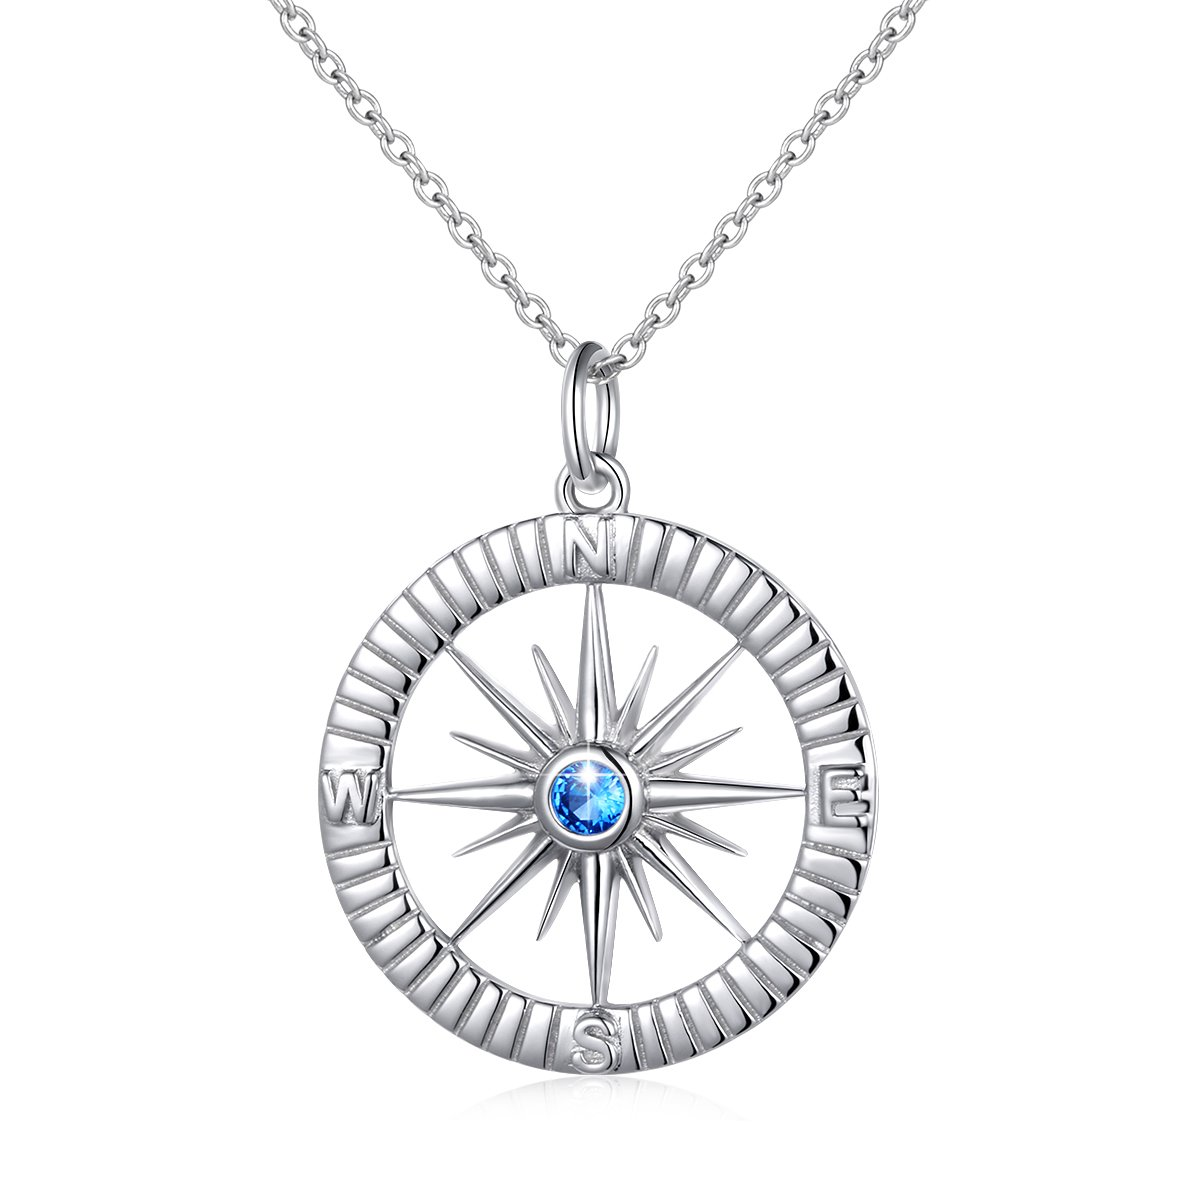 SILVER MOUNTAIN S925 Sterling Silver Compass No Matter Where Bracelet and Pendant Necklace 18'' (necklace A) by SILVER MOUNTAIN